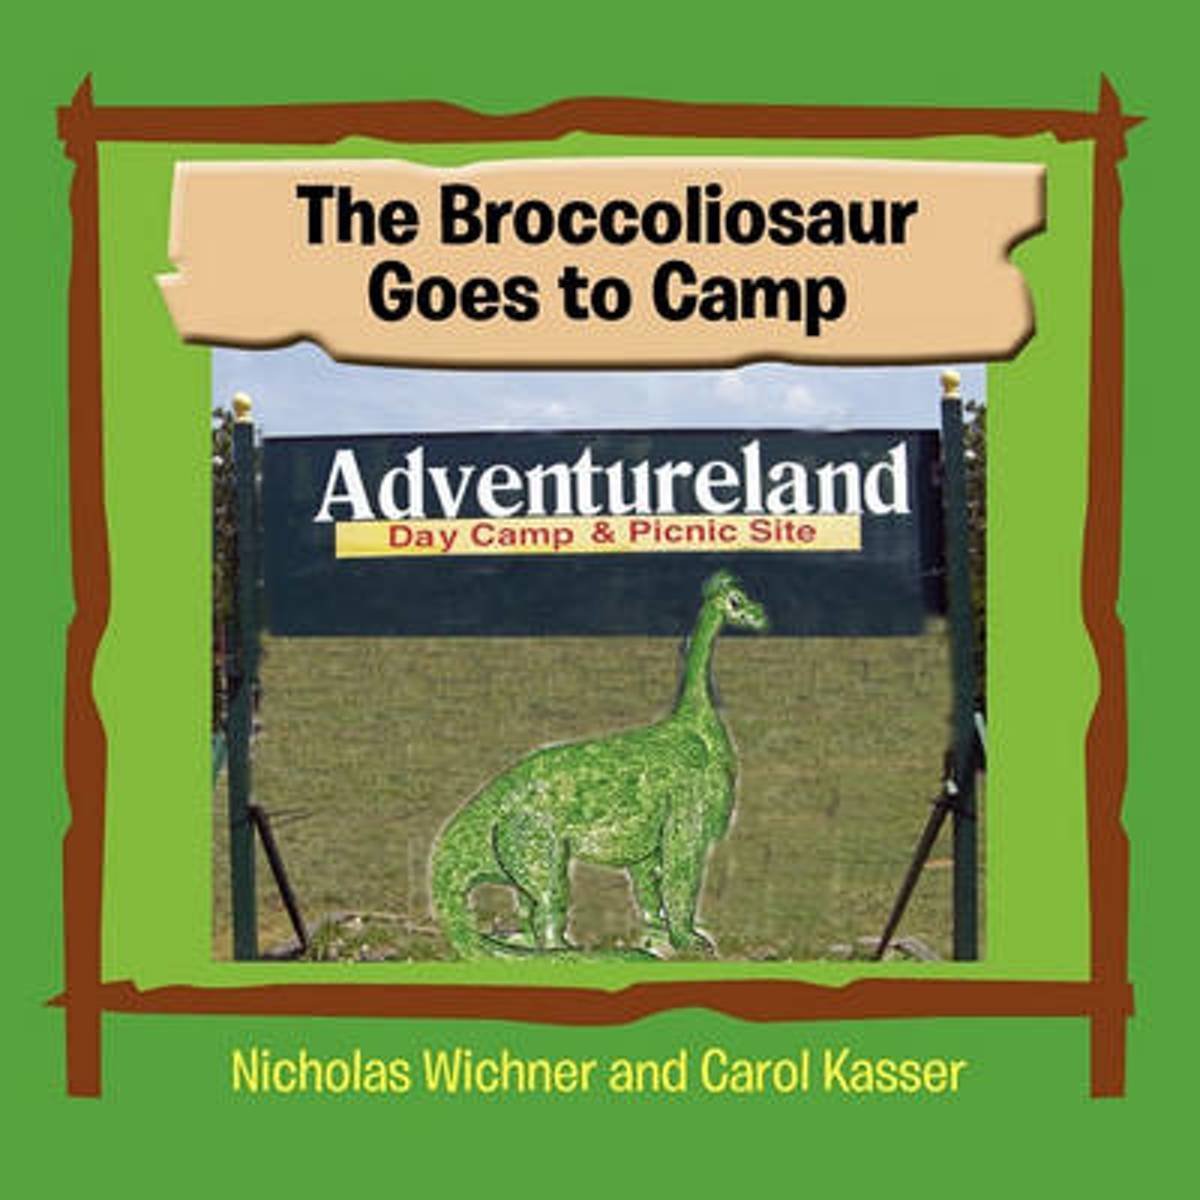 The Broccoliosaur Goes to Camp